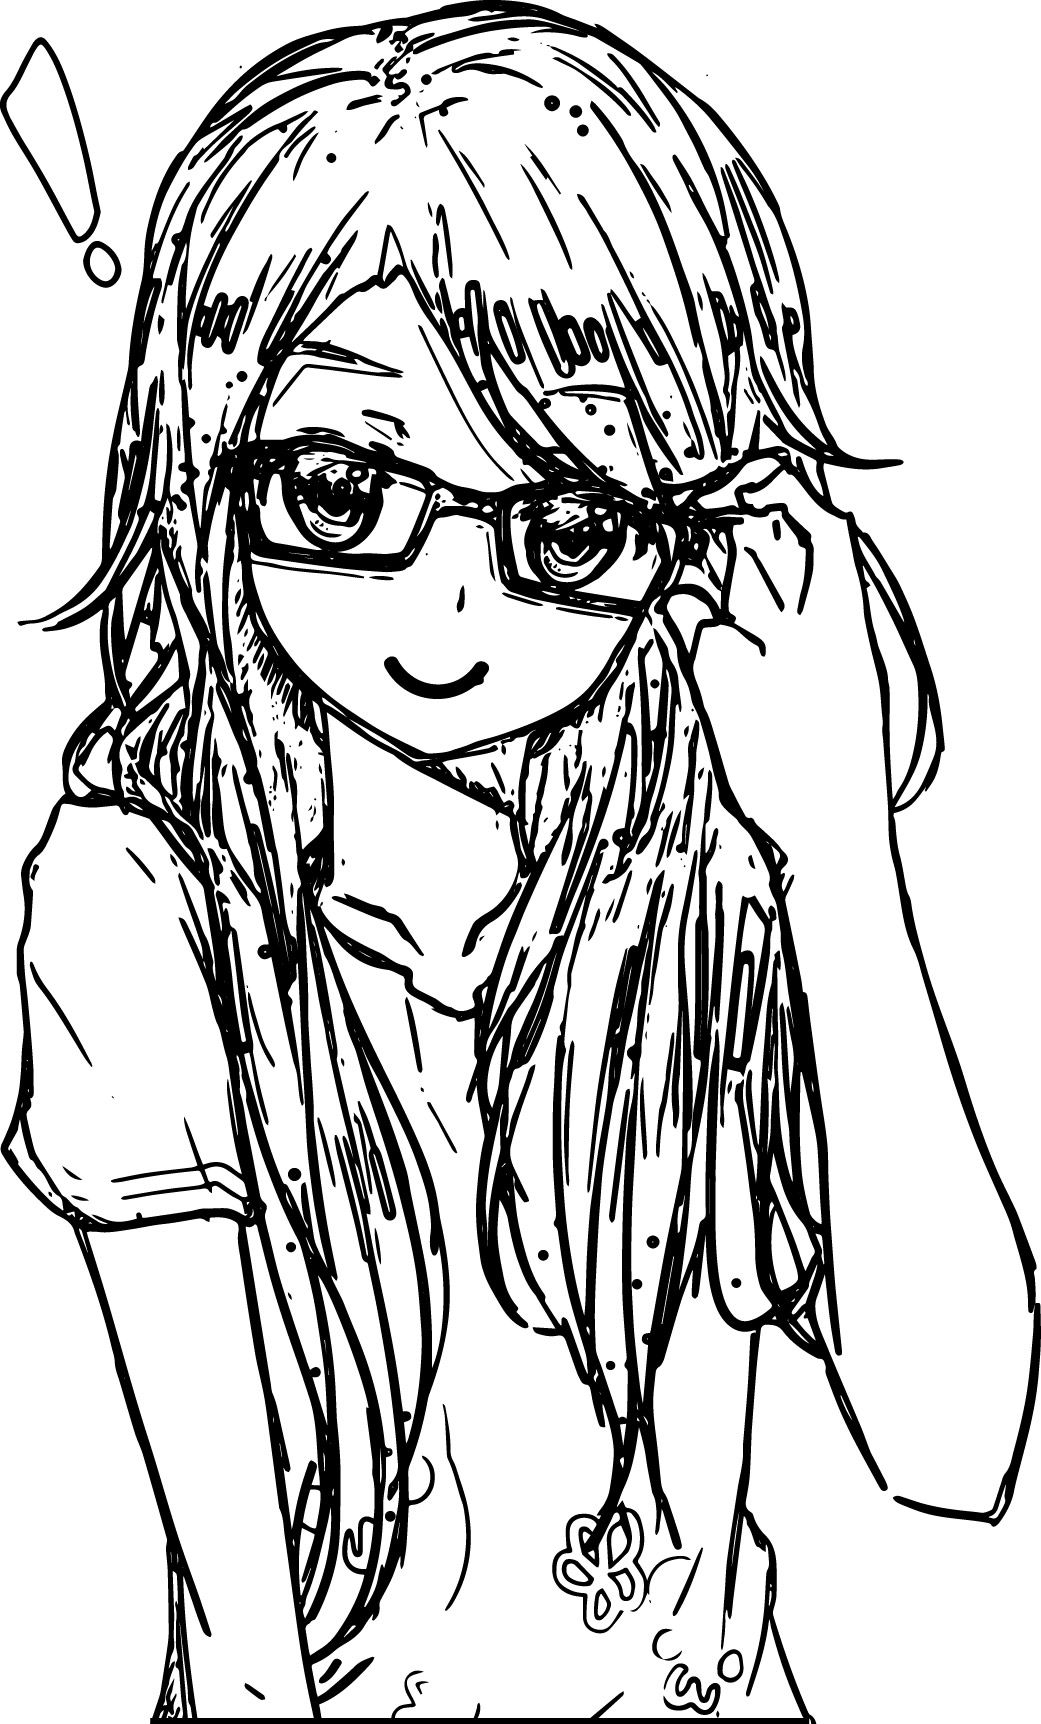 Awesome Anime Art Girl Glasses Coloring Page Mcoloring Anime Art